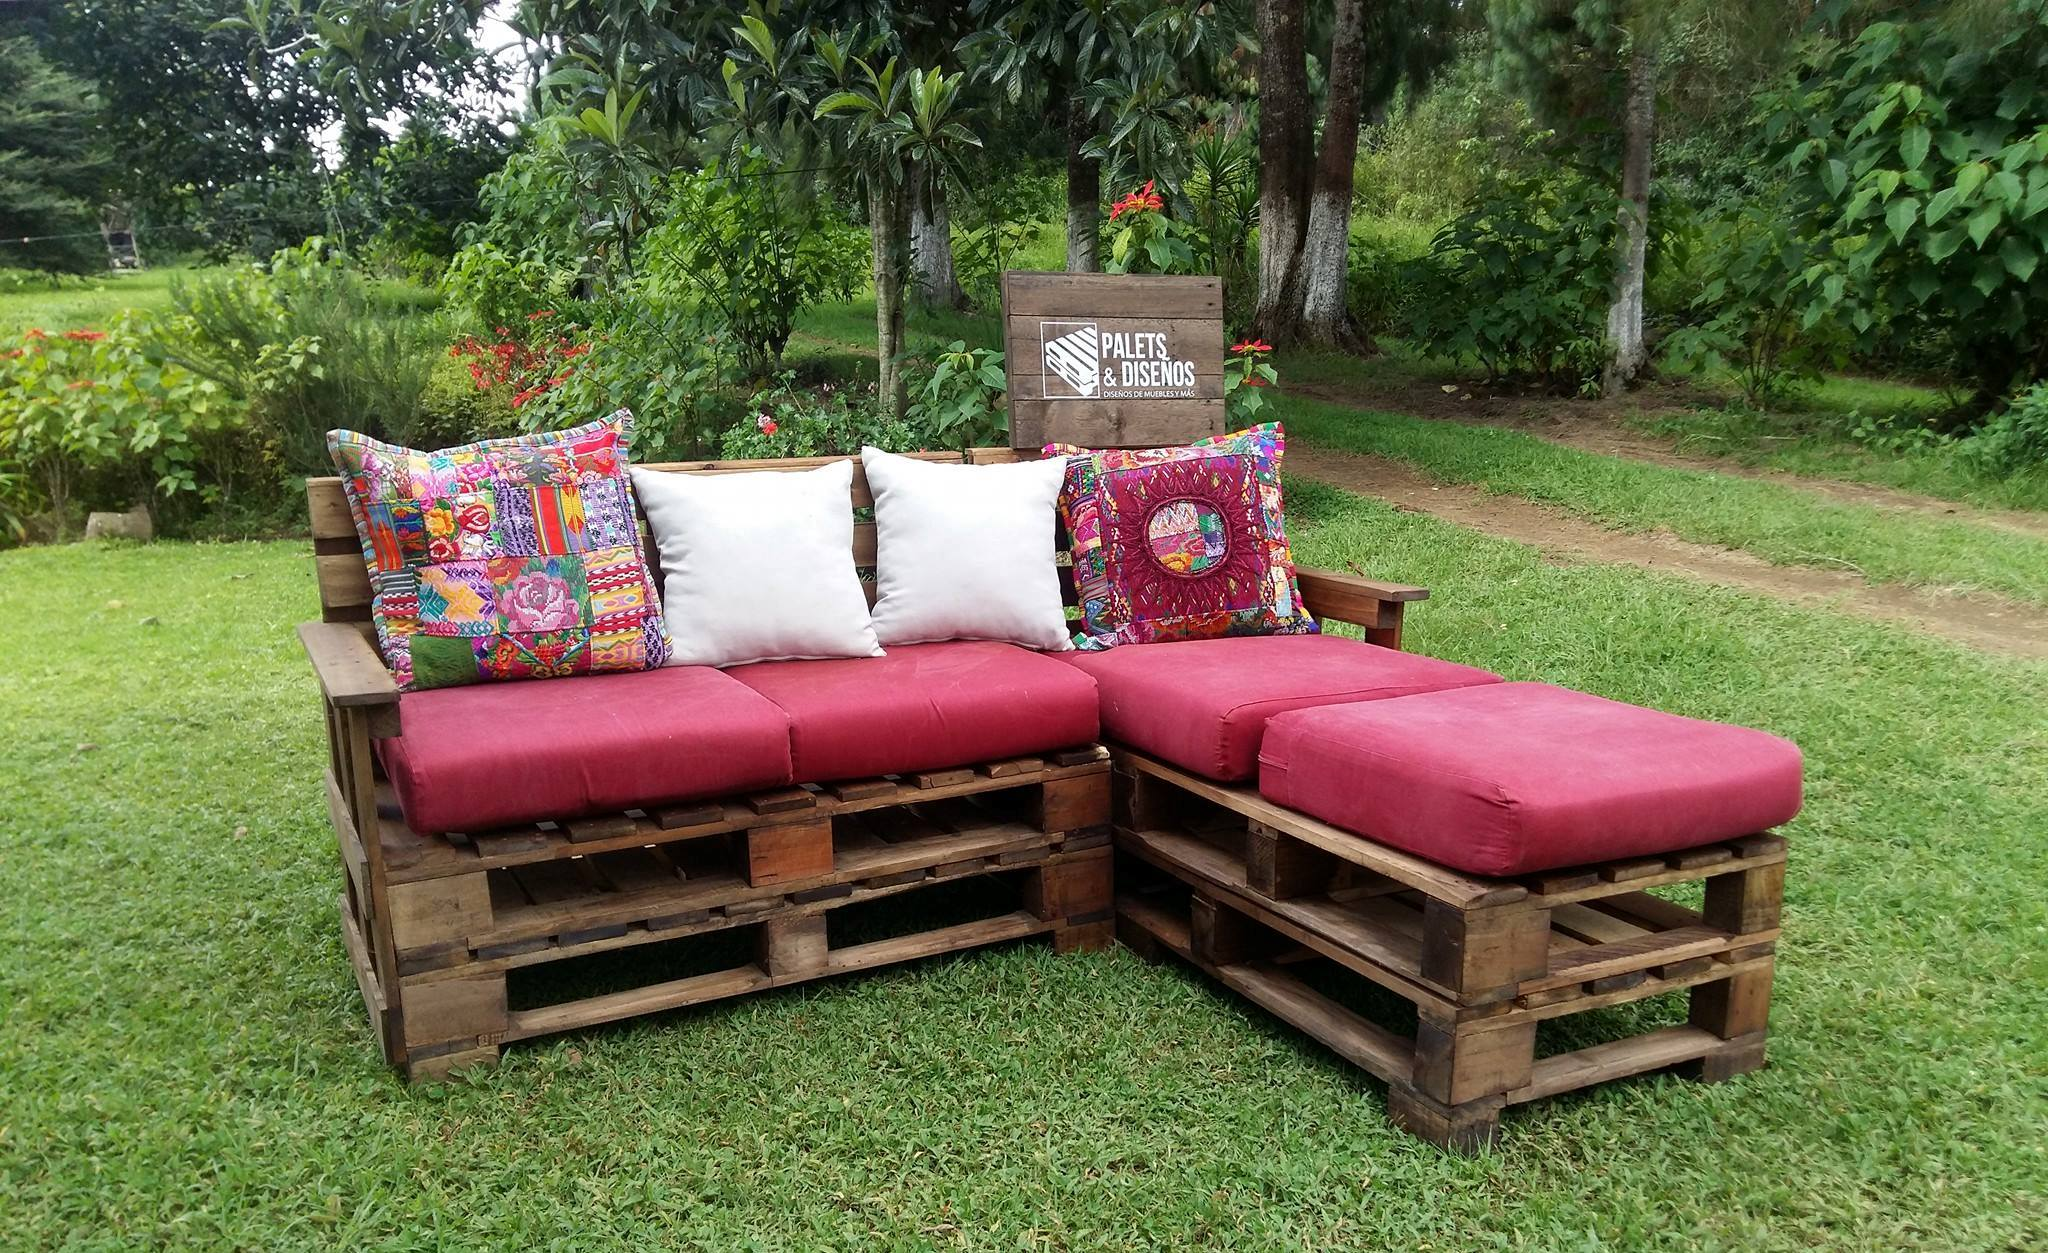 Muebles jardin palets best ideas para decoracion con for Muebles para terraza y jardin